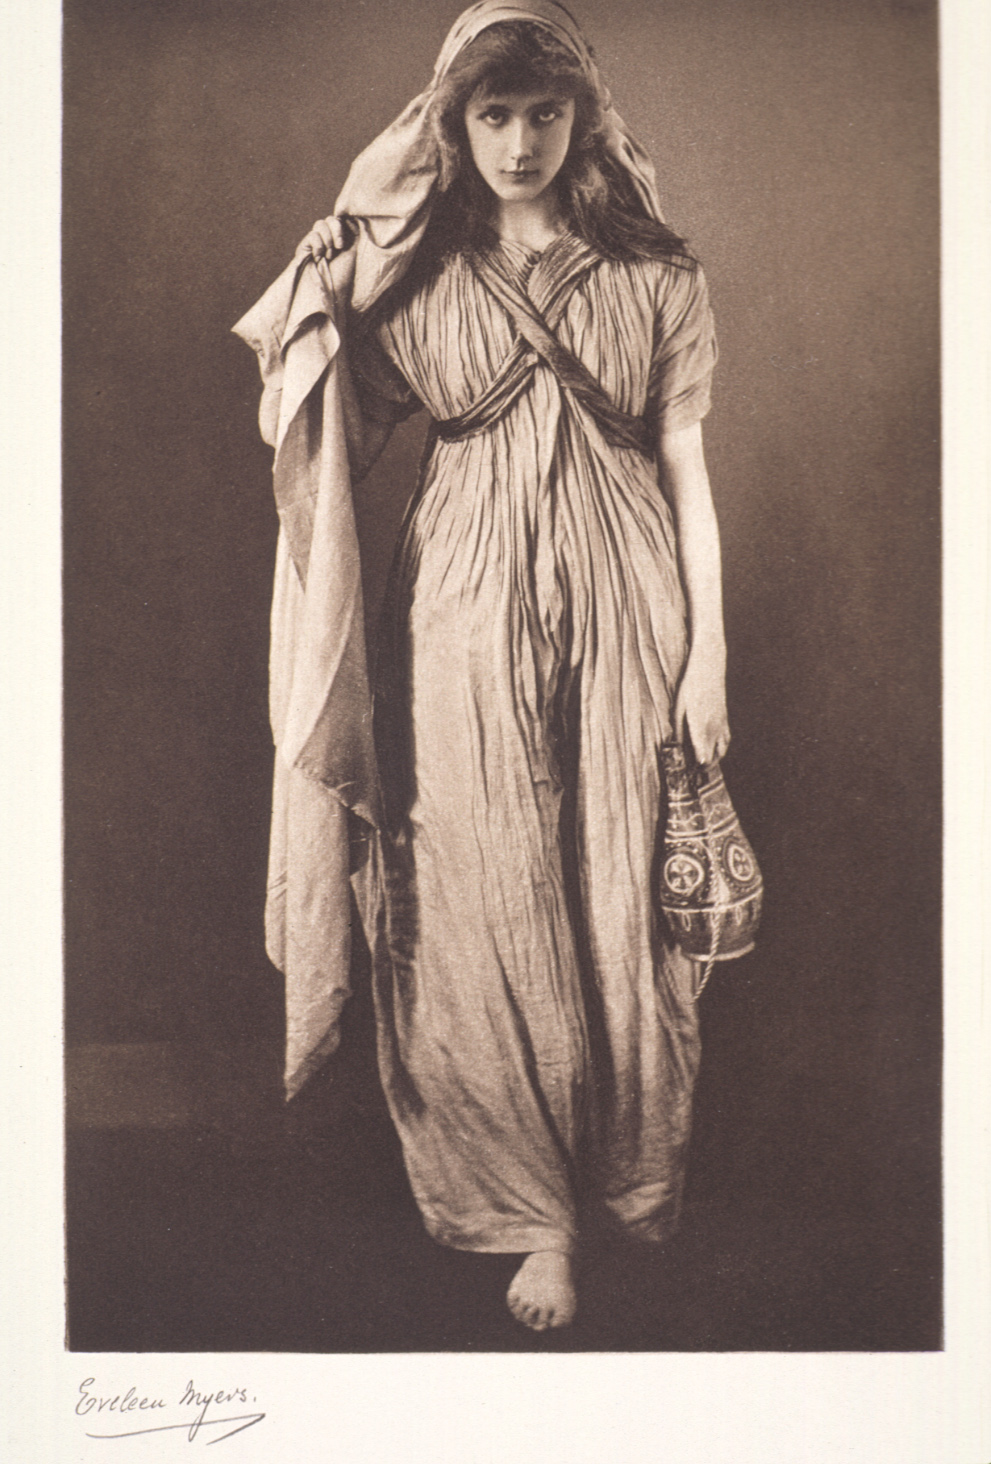 Black and white full-body portrait of a woman standing in long, white hooded robe looking at the viewer. She is carrying a water jug in her left hand